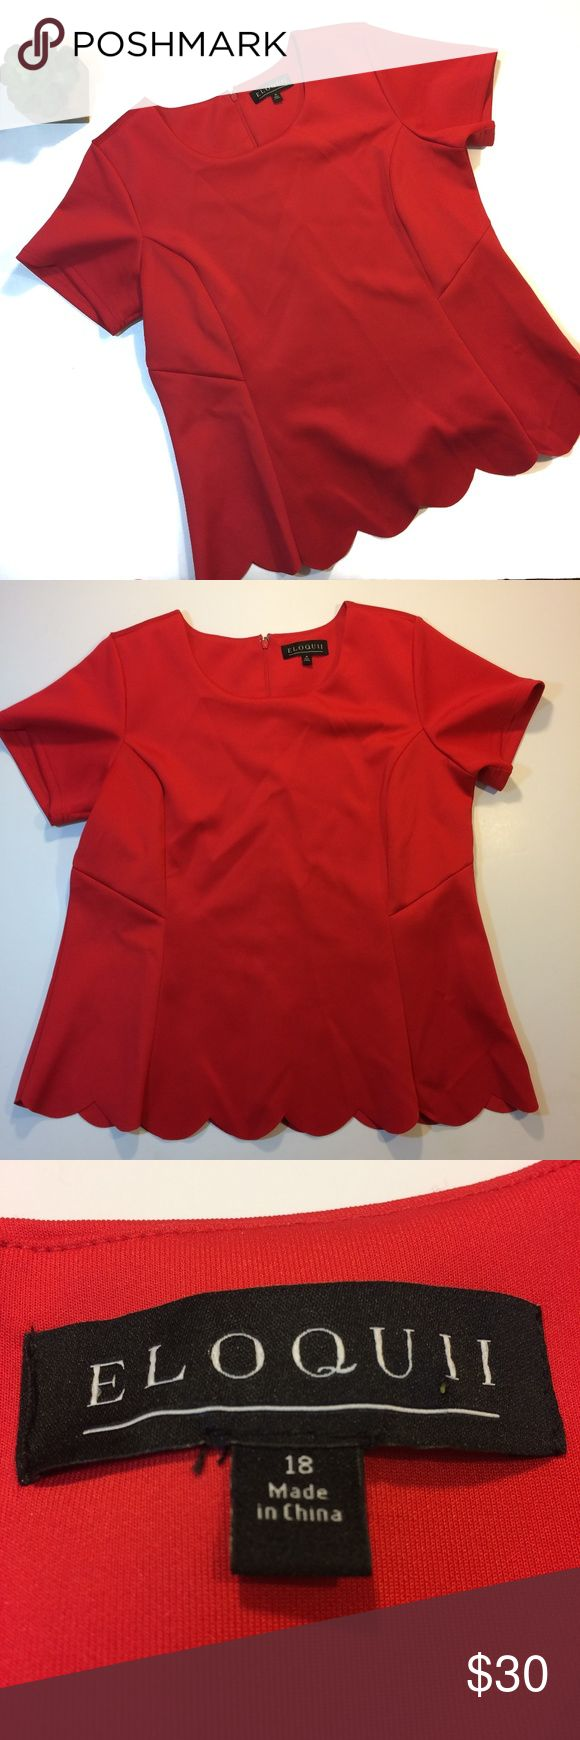 "Eloquii Scalloped Peplum Top 18 Eloquii Scalloped Peplum Top. Size 18. Measurements: Armpit to armpit: 21""/Length: 27"". Vibrant red peplum top with scalloped hem and short sleeves. Like new condition with no flaws, stains, or holes. From a smoke and pet free home. Offers warmly welcomed. Eloquii Tops"